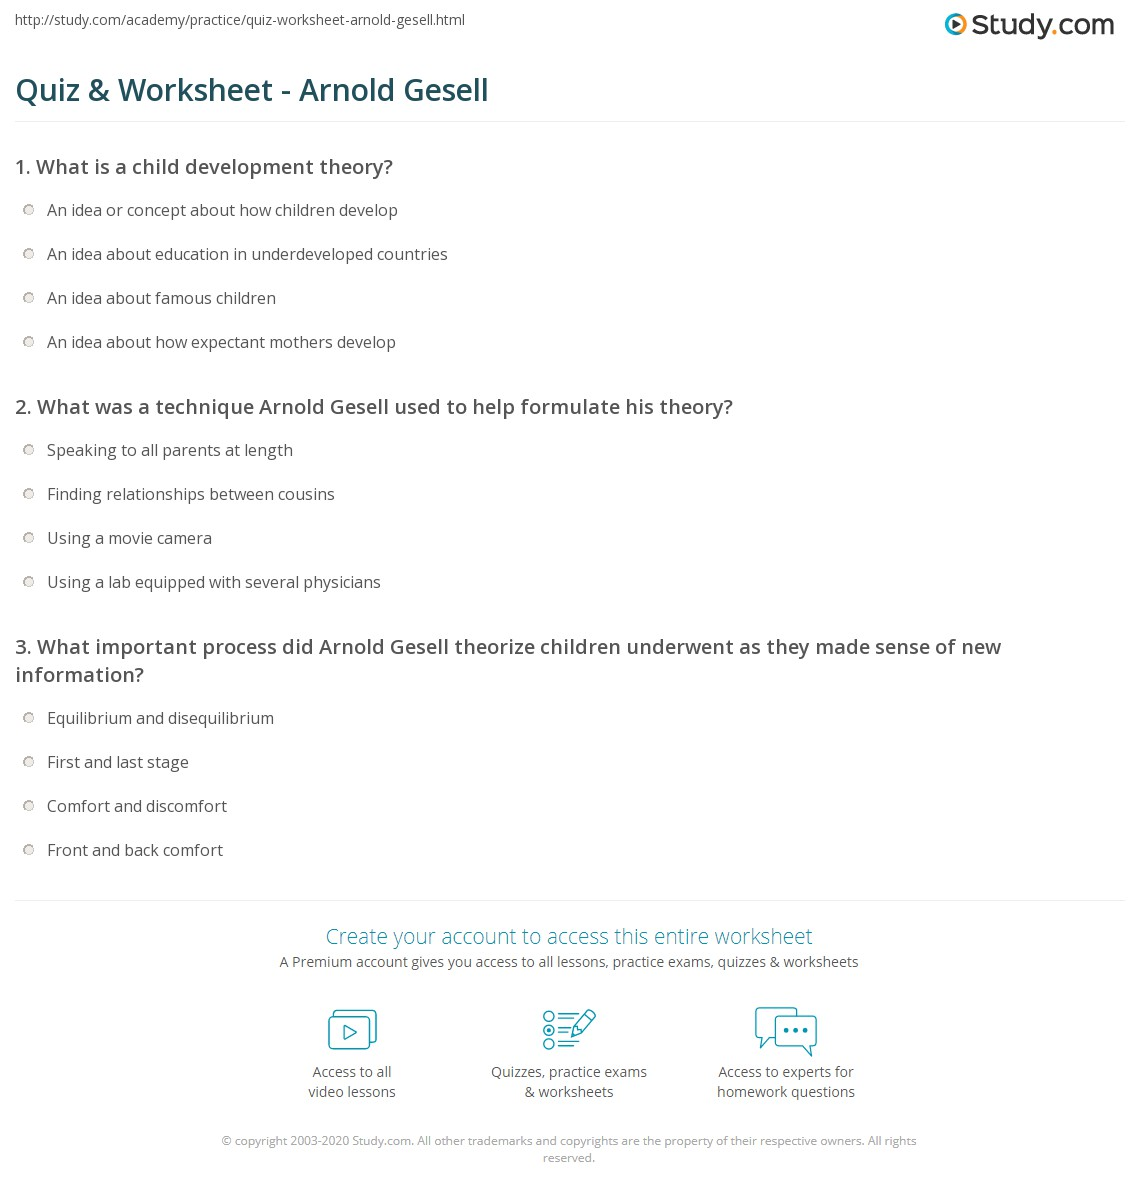 Quiz & Worksheet - Arnold Gesell  Study.com worksheets, worksheets for teachers, grade worksheets, printable worksheets, math worksheets, and multiplication Child Development Theorists Worksheet 2 1195 x 1140